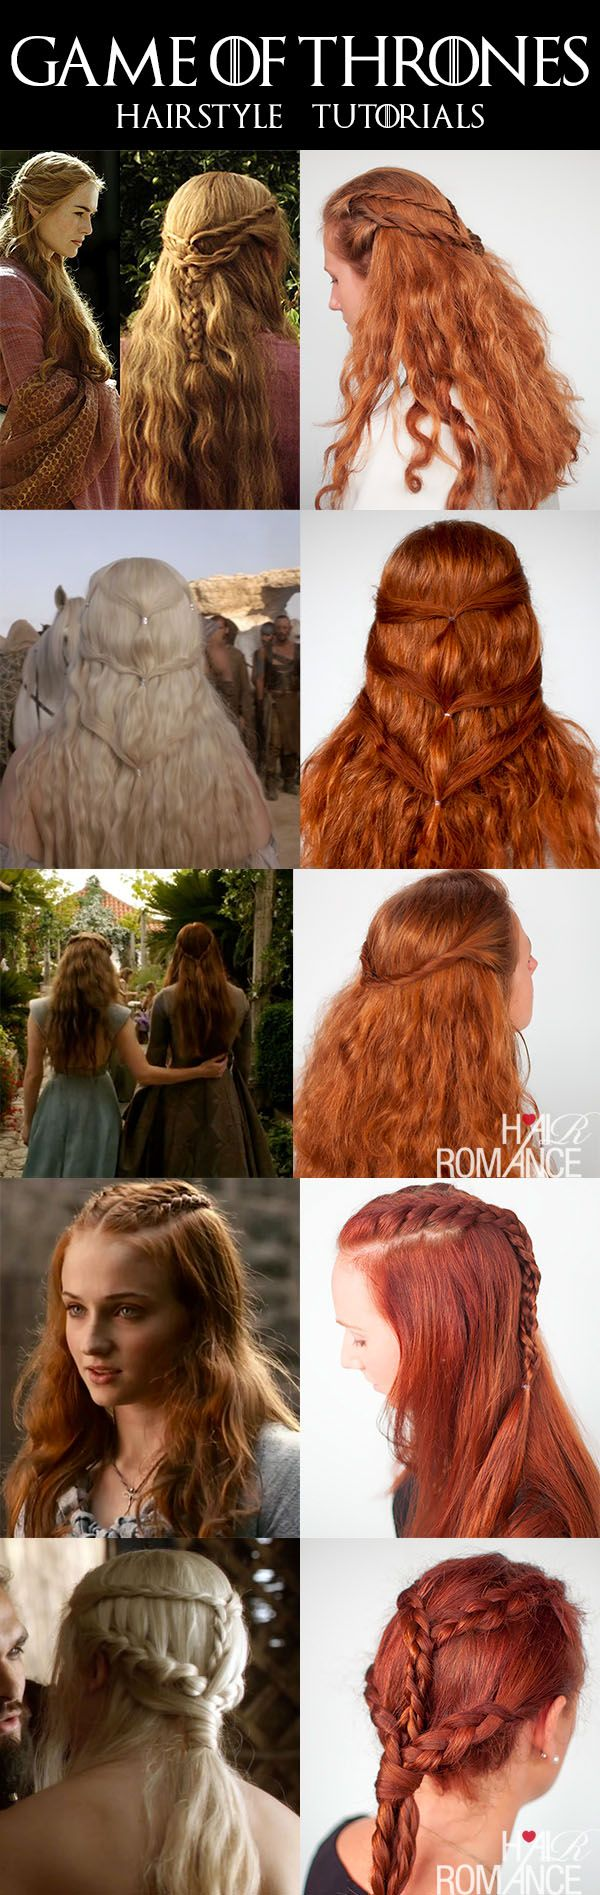 Game Of Thrones Hairstyle Tutorials Hair Romance Hair Styles Hair Tutorial Hair Romance